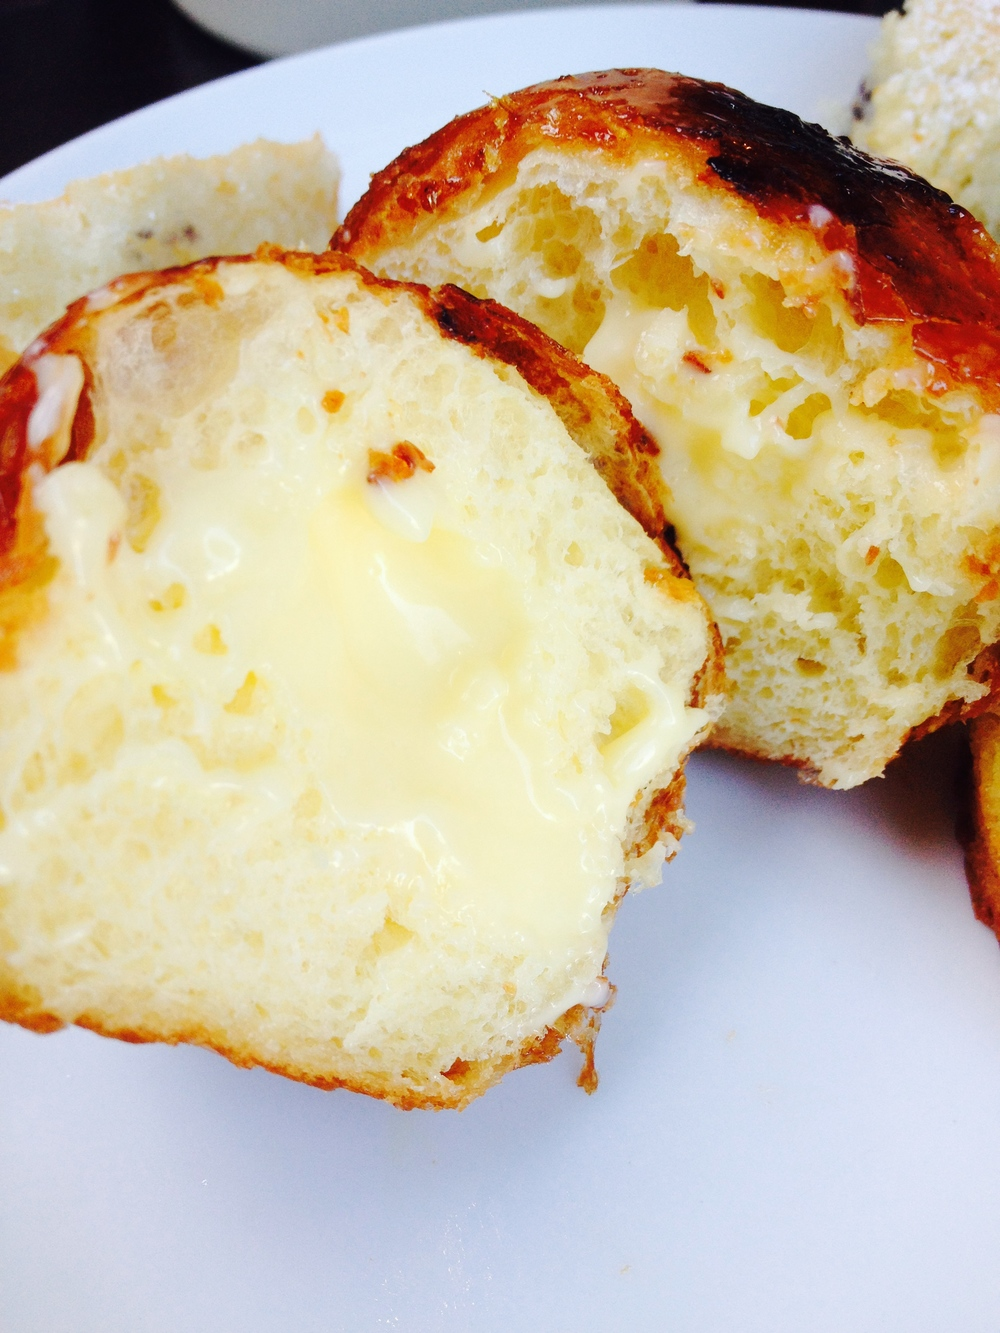 Inside view of the amazing custard-filled crème   brûlée bombolini